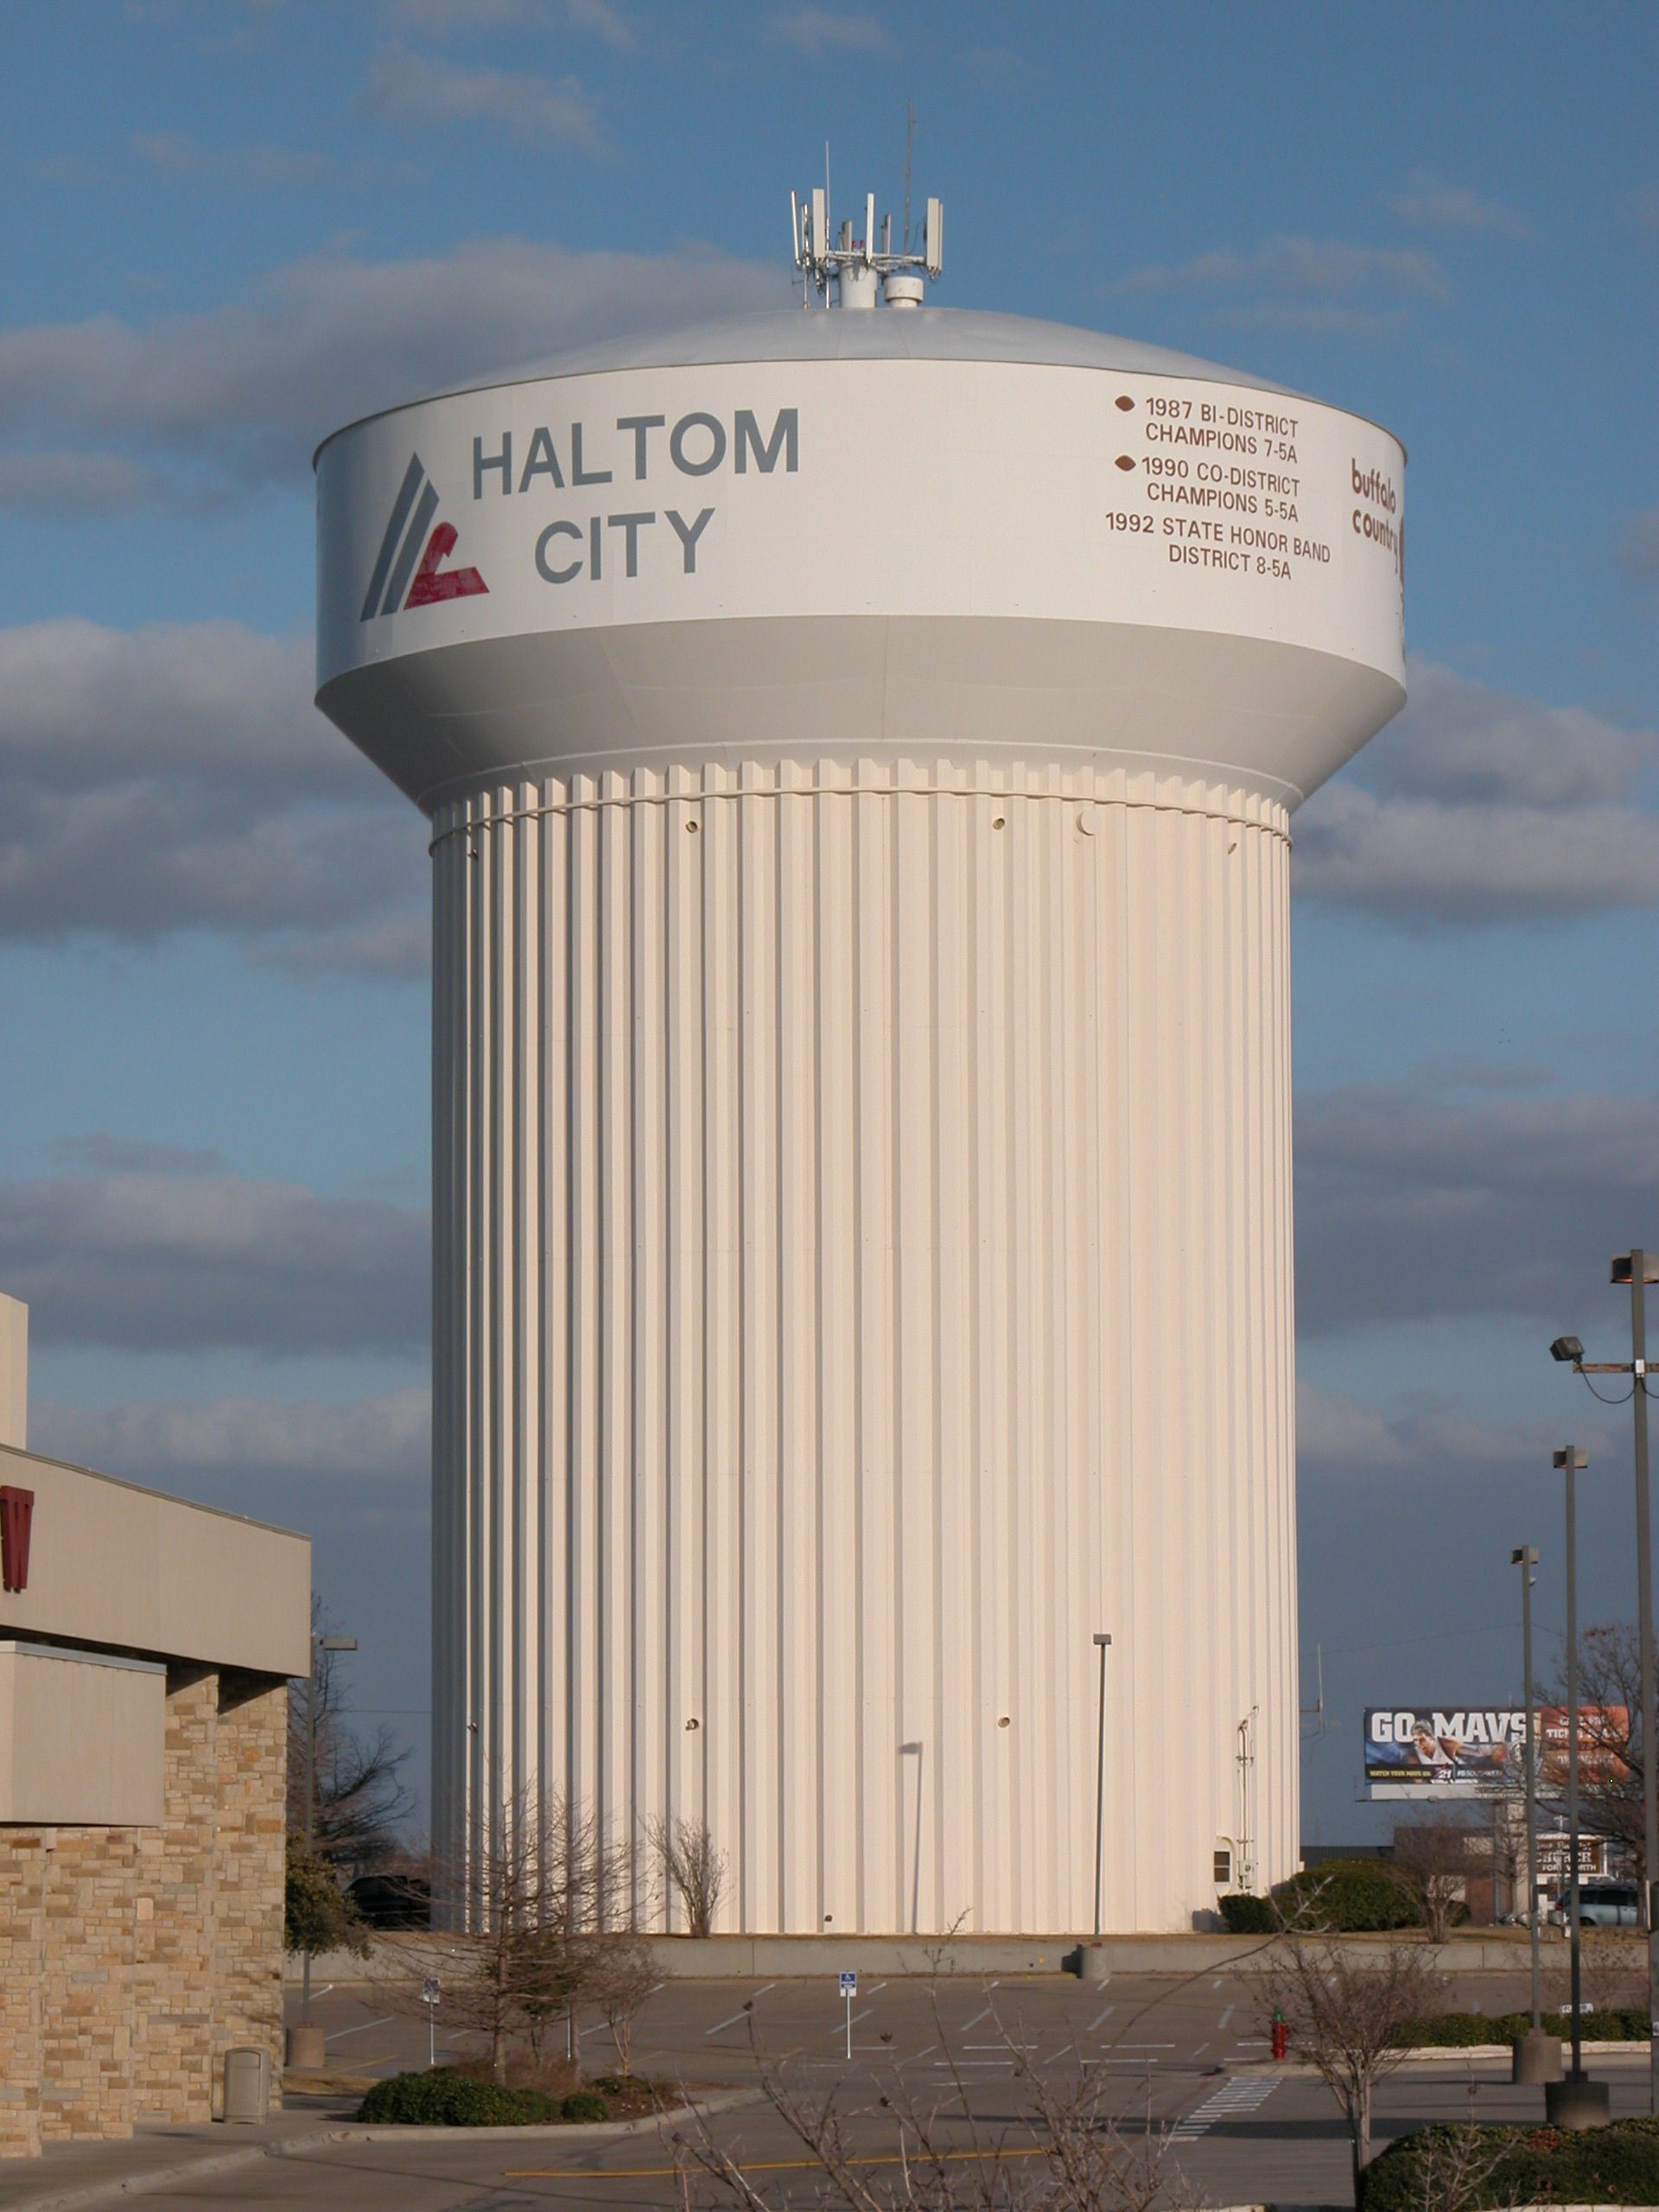 Haltom City, TX | Places I've Been | Fort worth texas, Fort